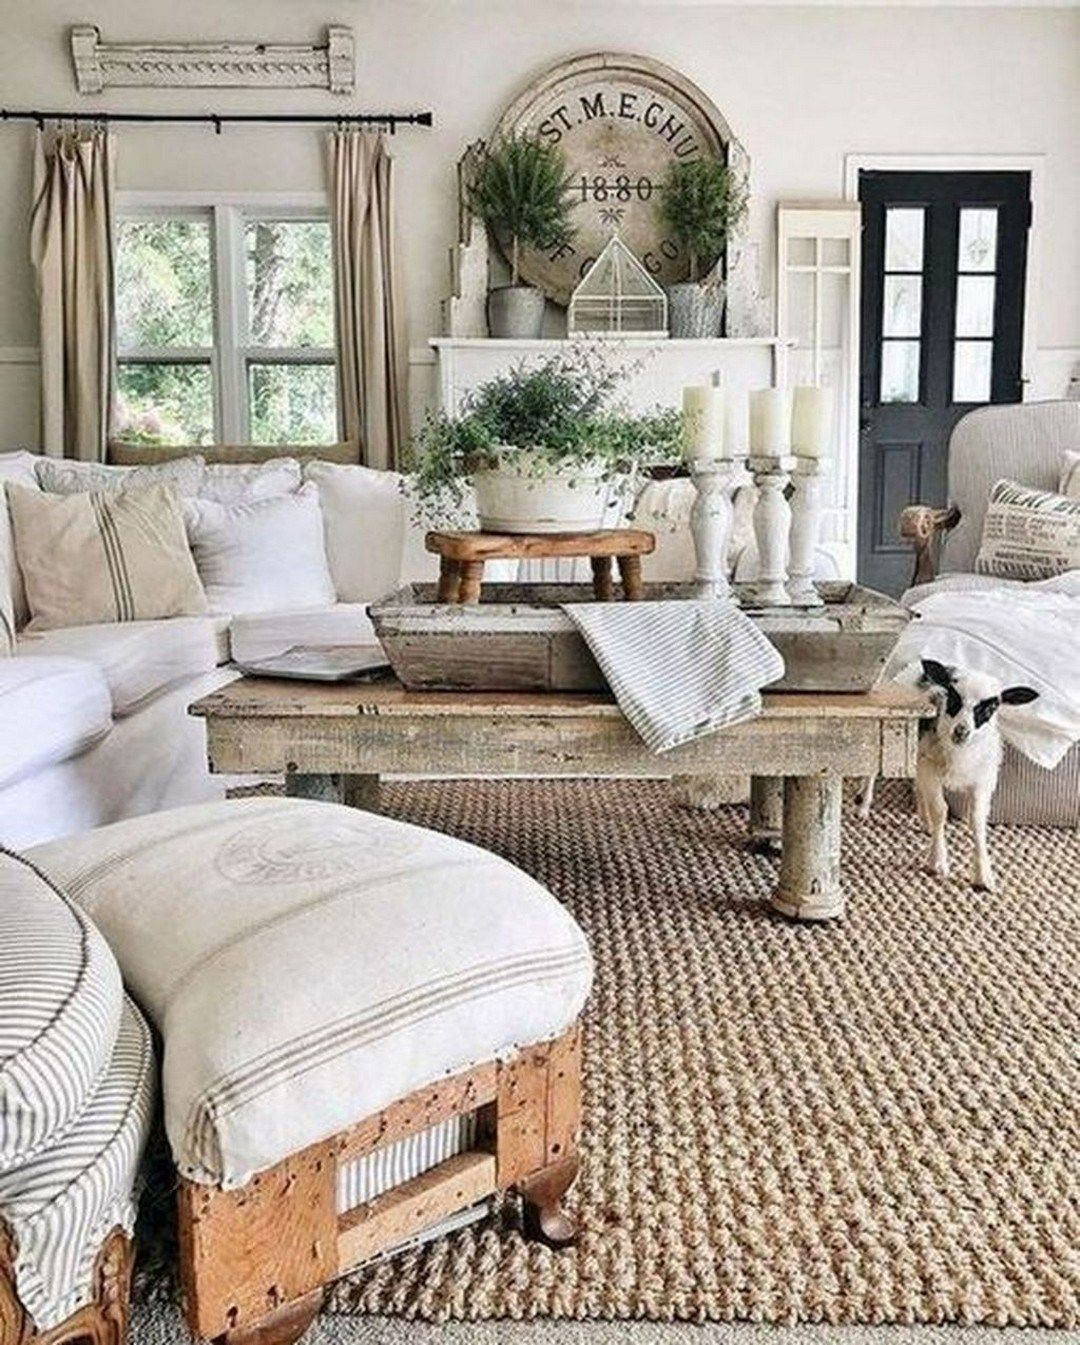 Top 11 Incredible Cozy And Rustic Chic Living Room For: 52 Best Modern Farmhouse Decor Ideas Easy To Managed In